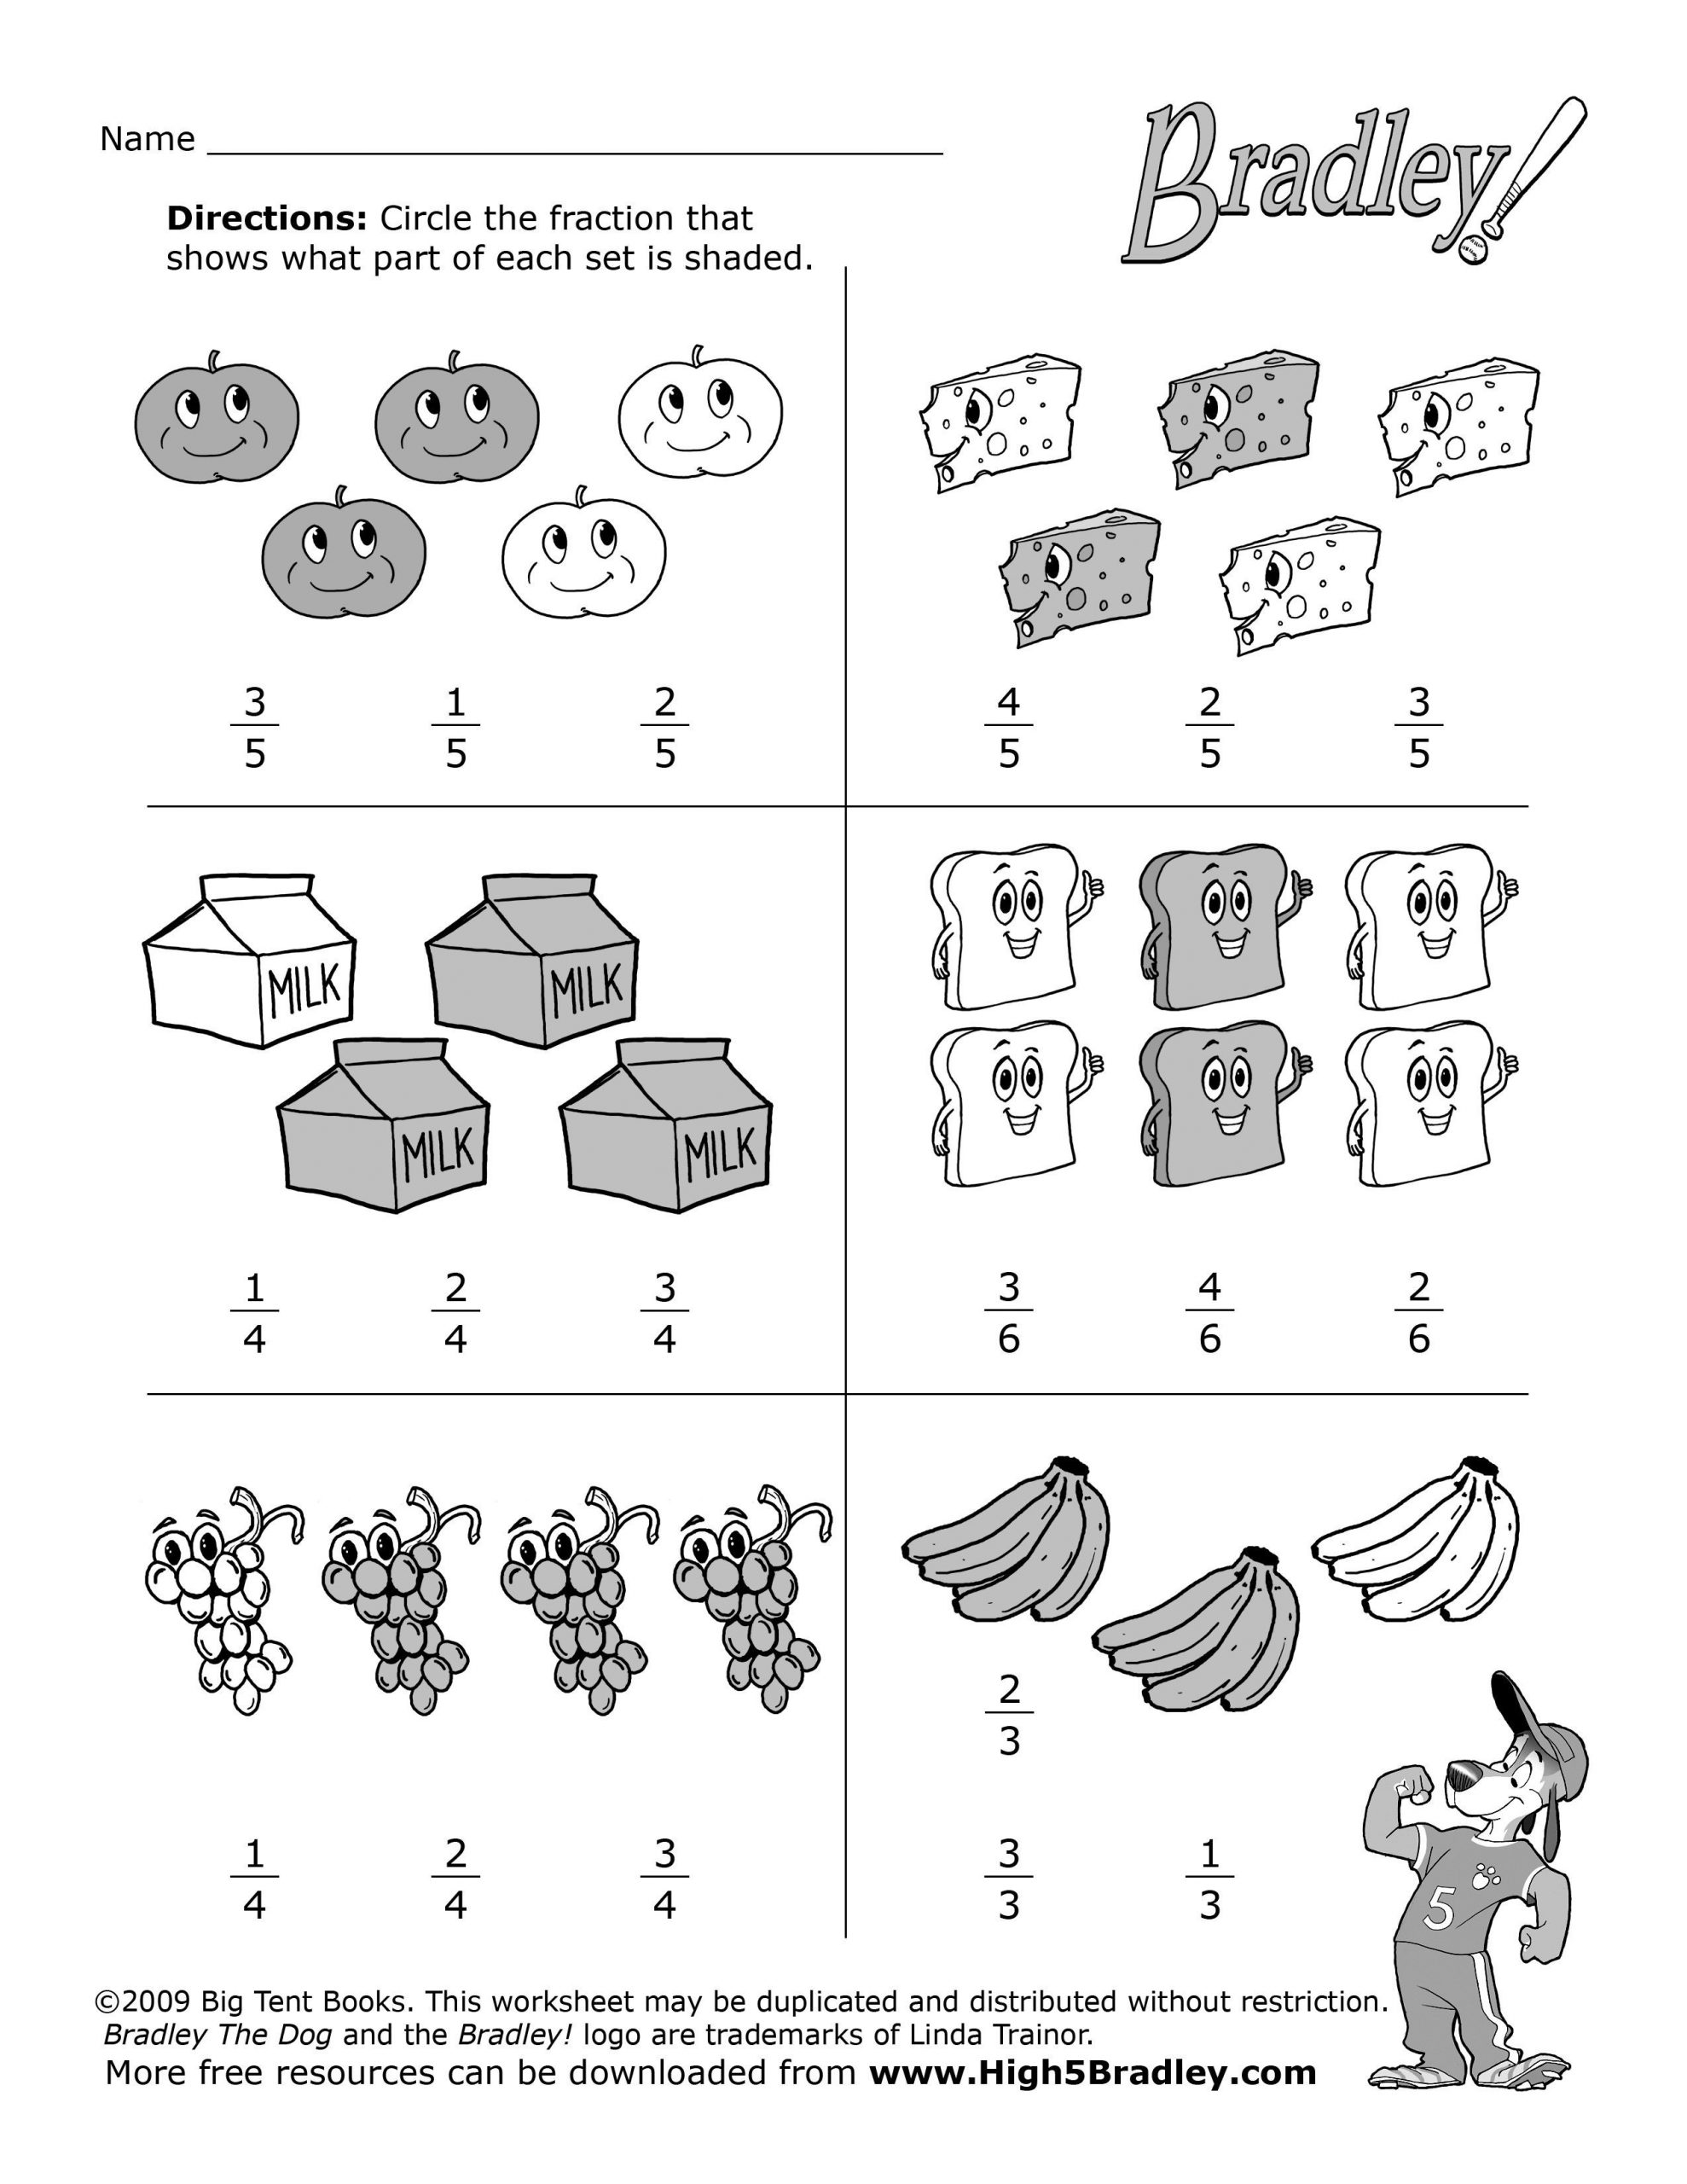 Fractions Worksheets 2nd Grade 2nd Grade Math Food Fractions1 2 550—3 300 Pixels